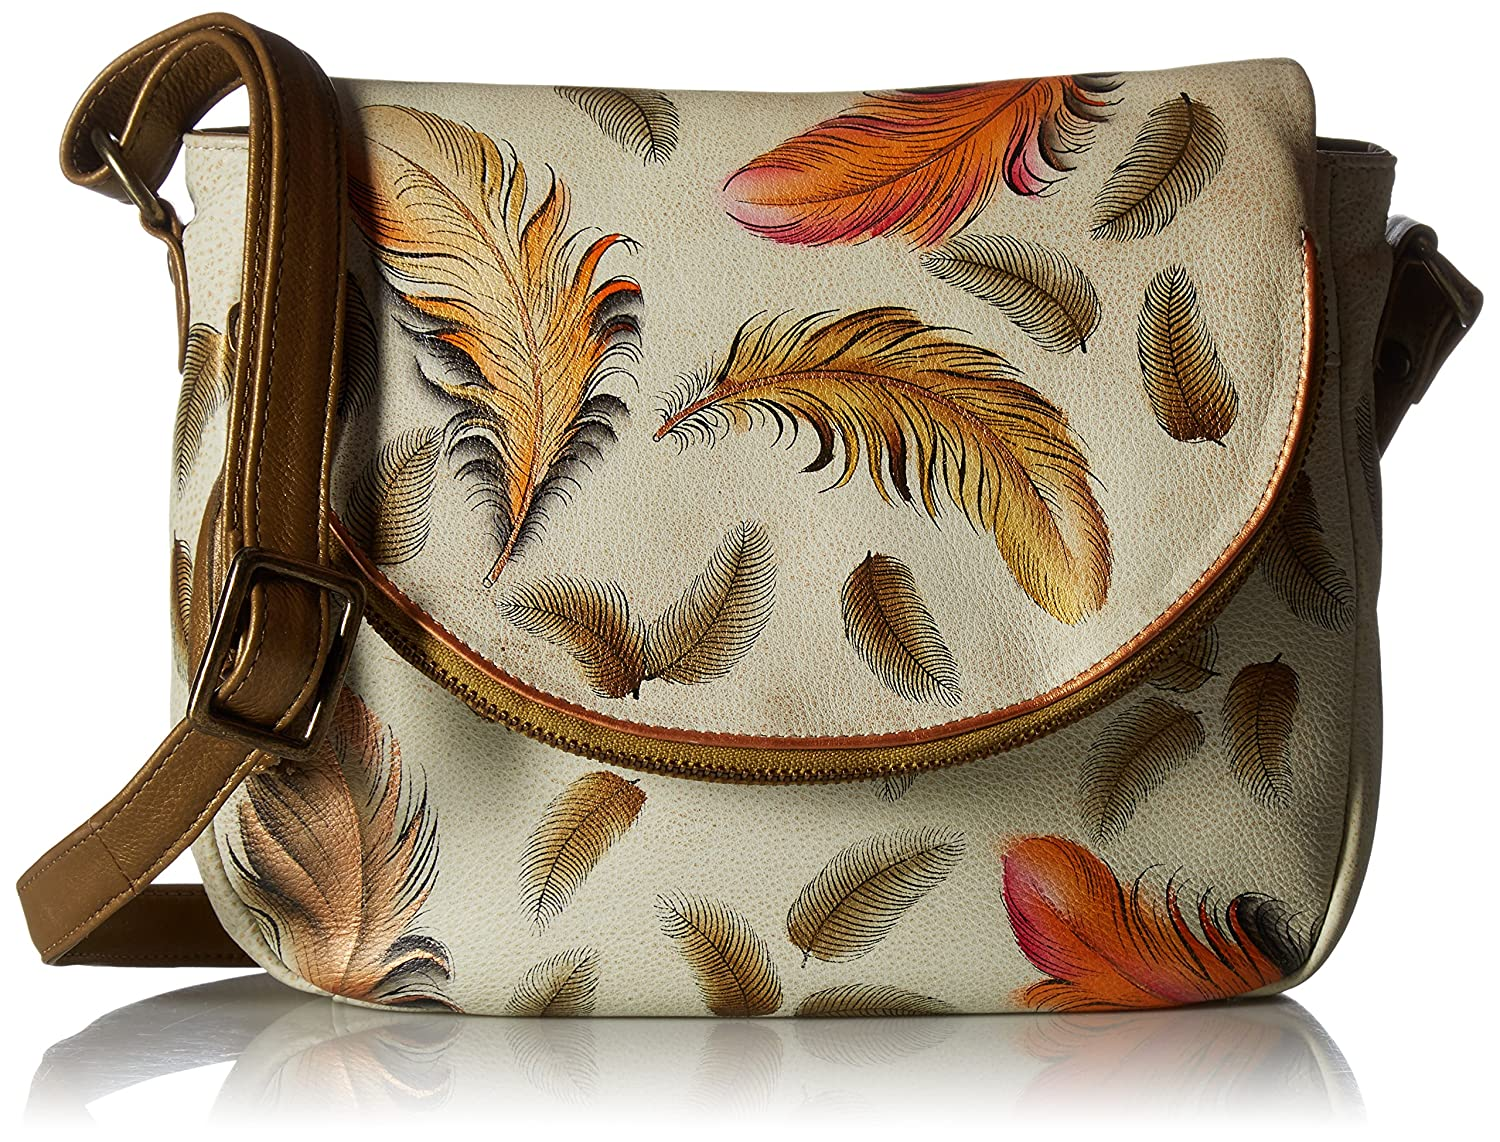 Ifloating Feathers Ivory Anuschka Handpainted Leather FlapOver Congreenible,Floating Feathers Ivory